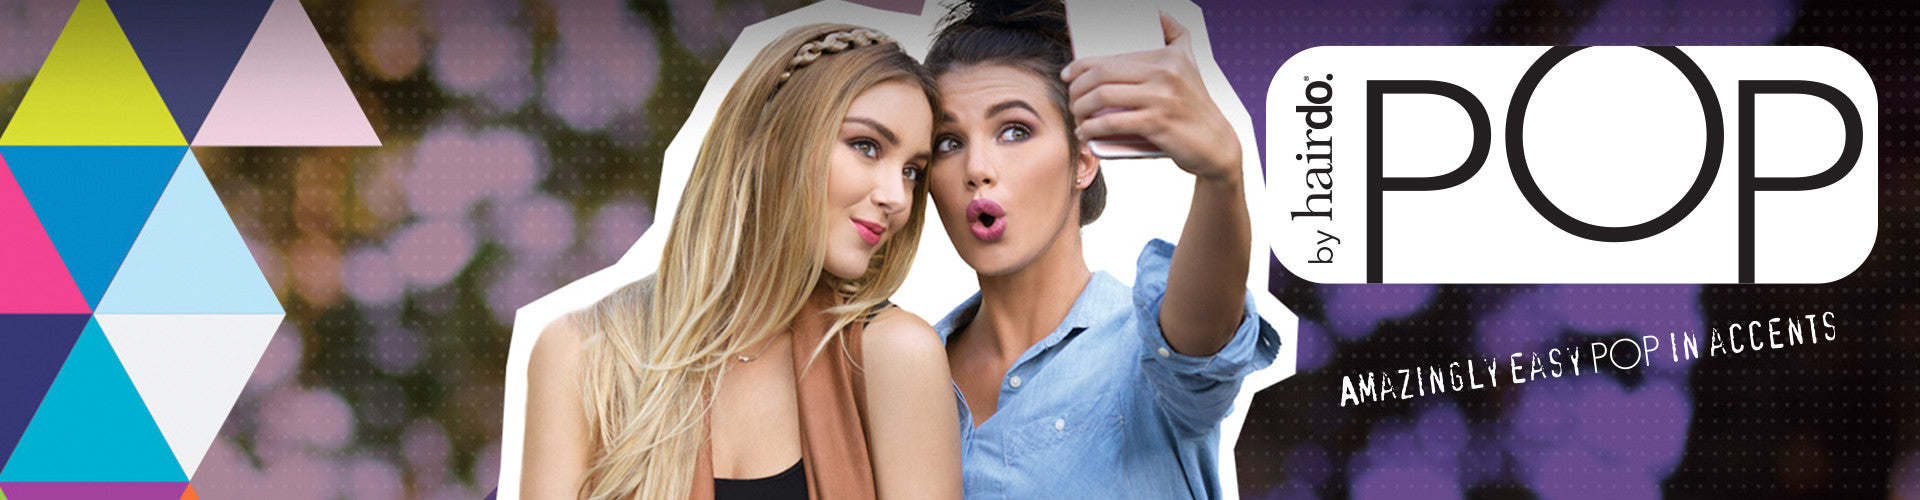 POP by hairdo | Fun Hairpieces & Clip-In Extensions